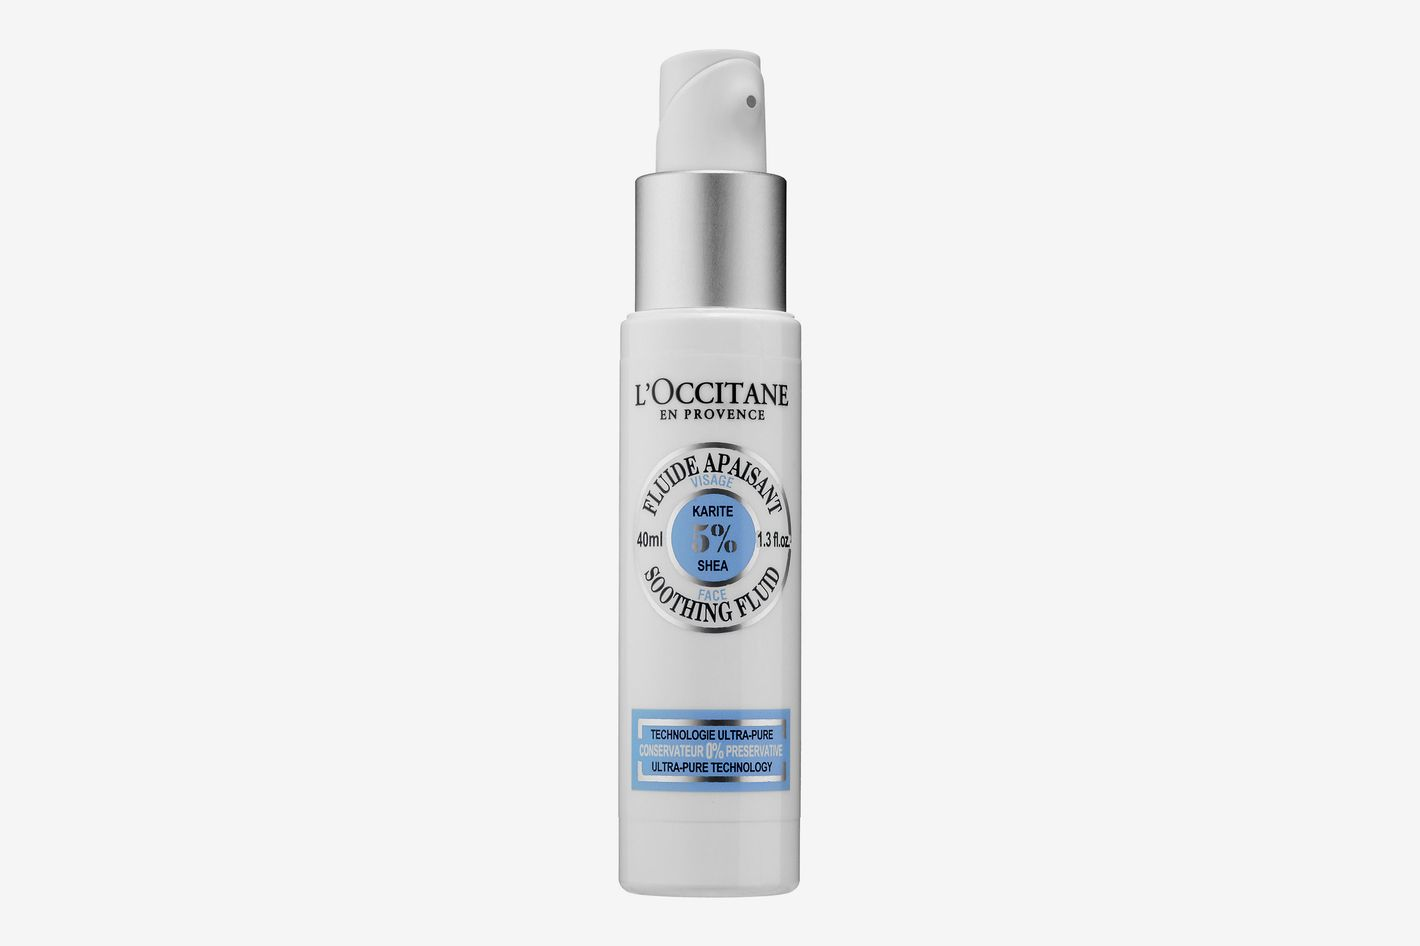 L'Occitane Shea Butter Face Soothing Fluid